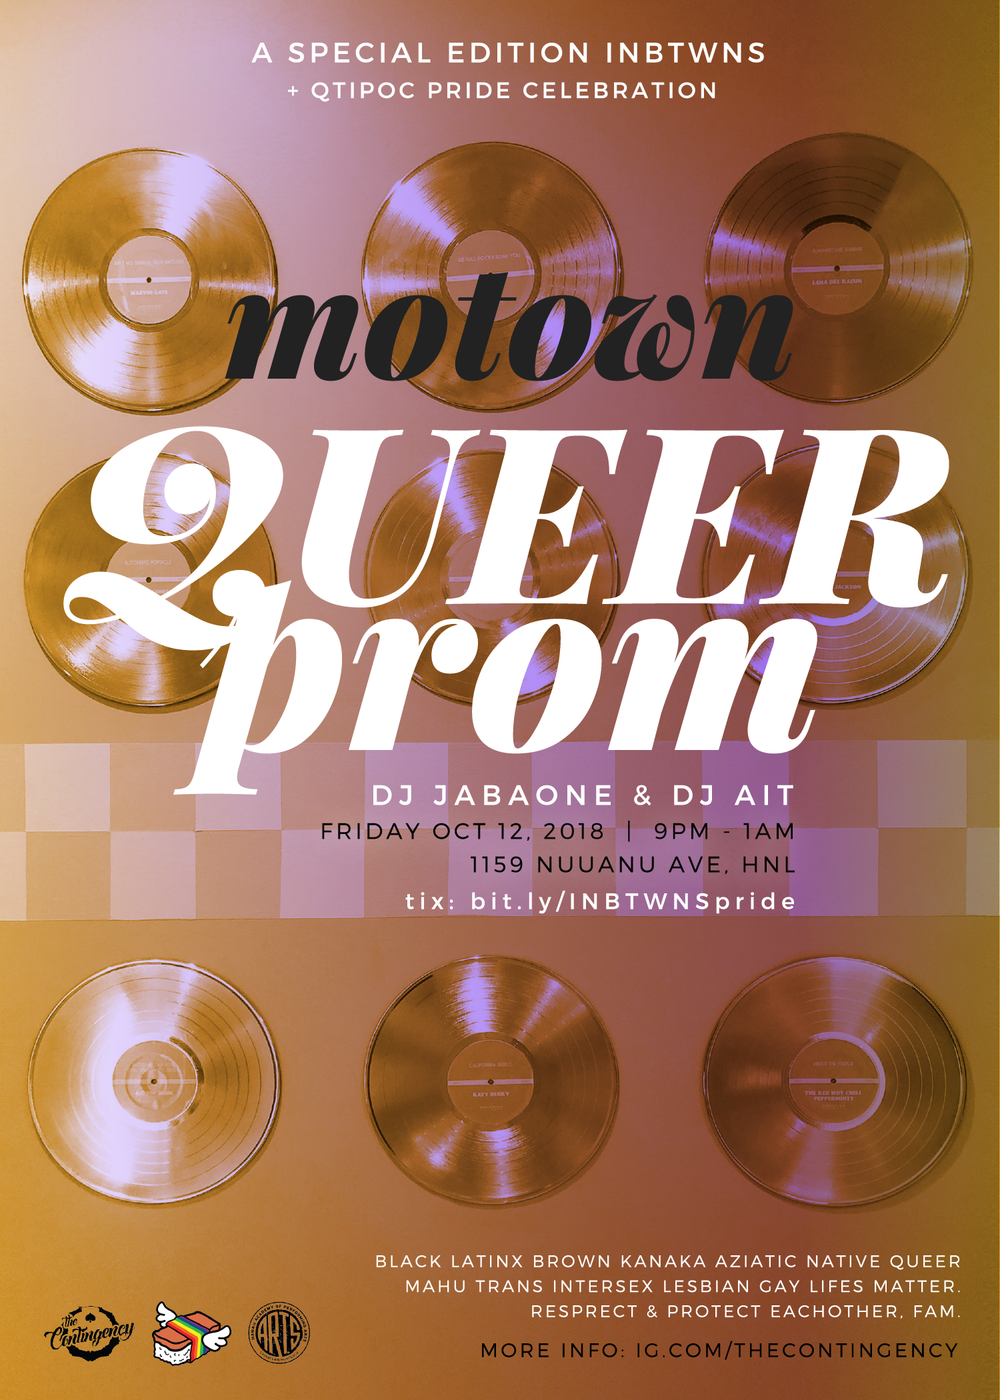 motown prom flyer-v2-01 - Openi Hsin Cheung.png